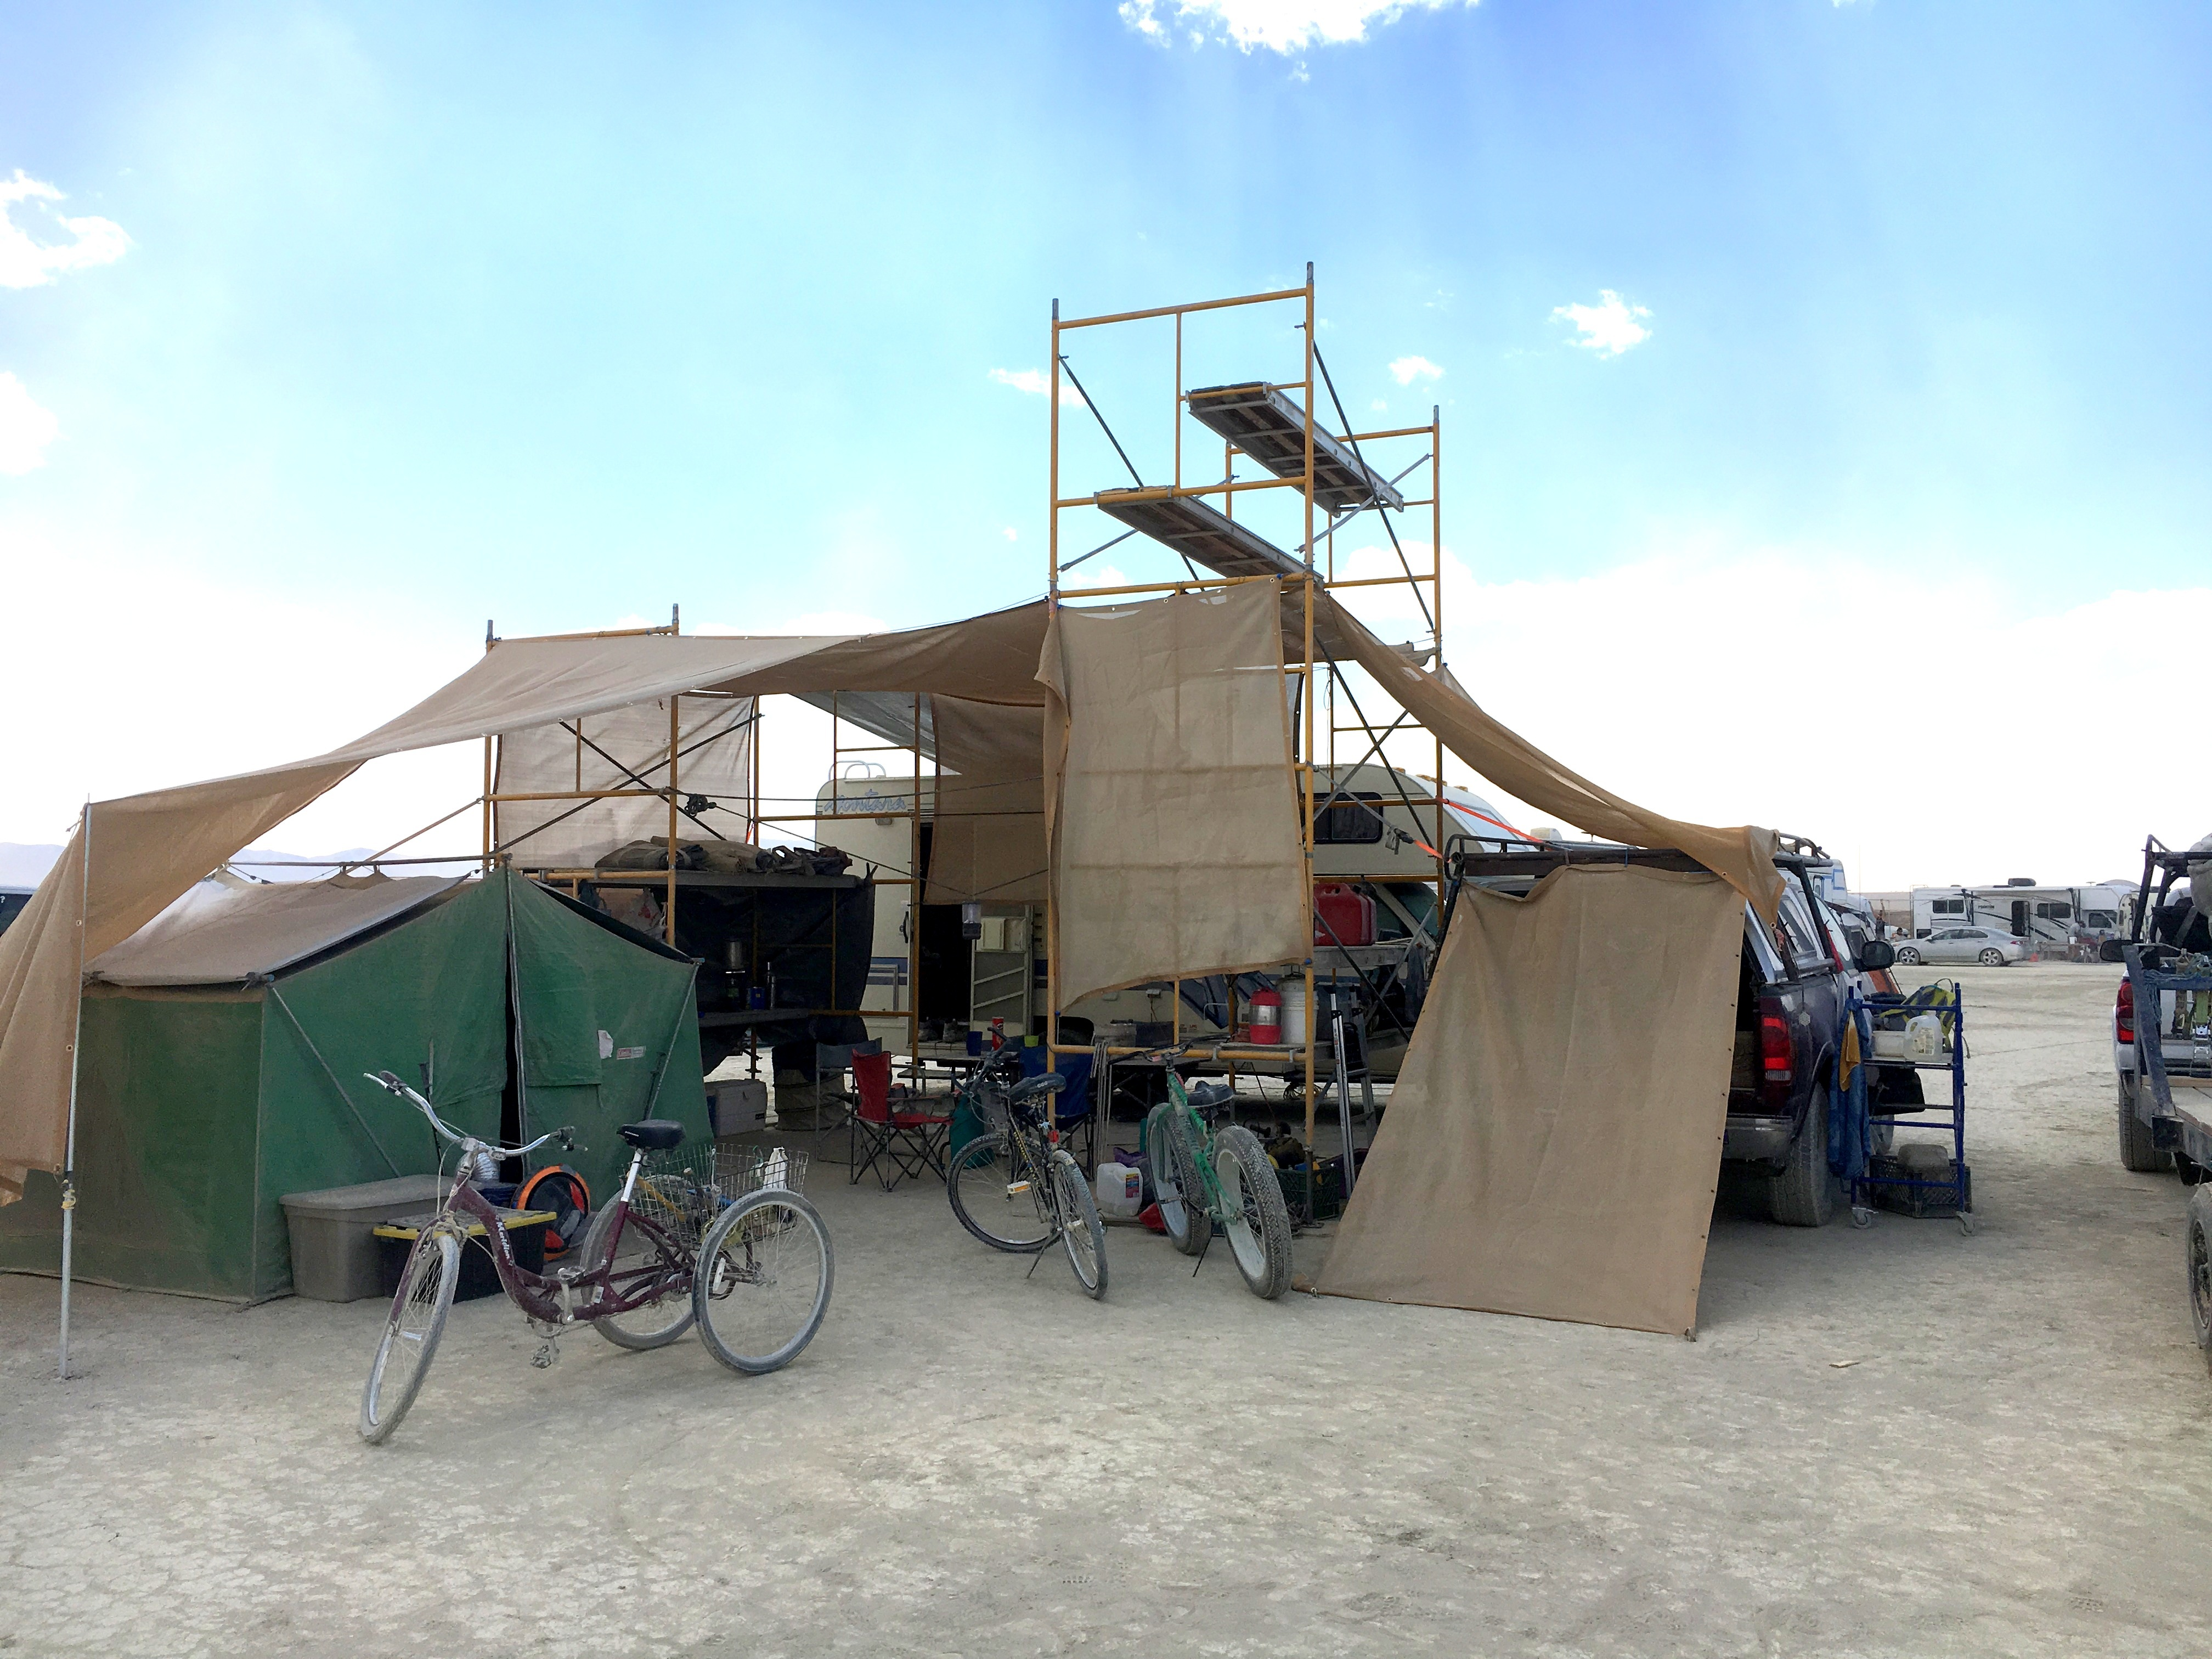 Burning Man '16